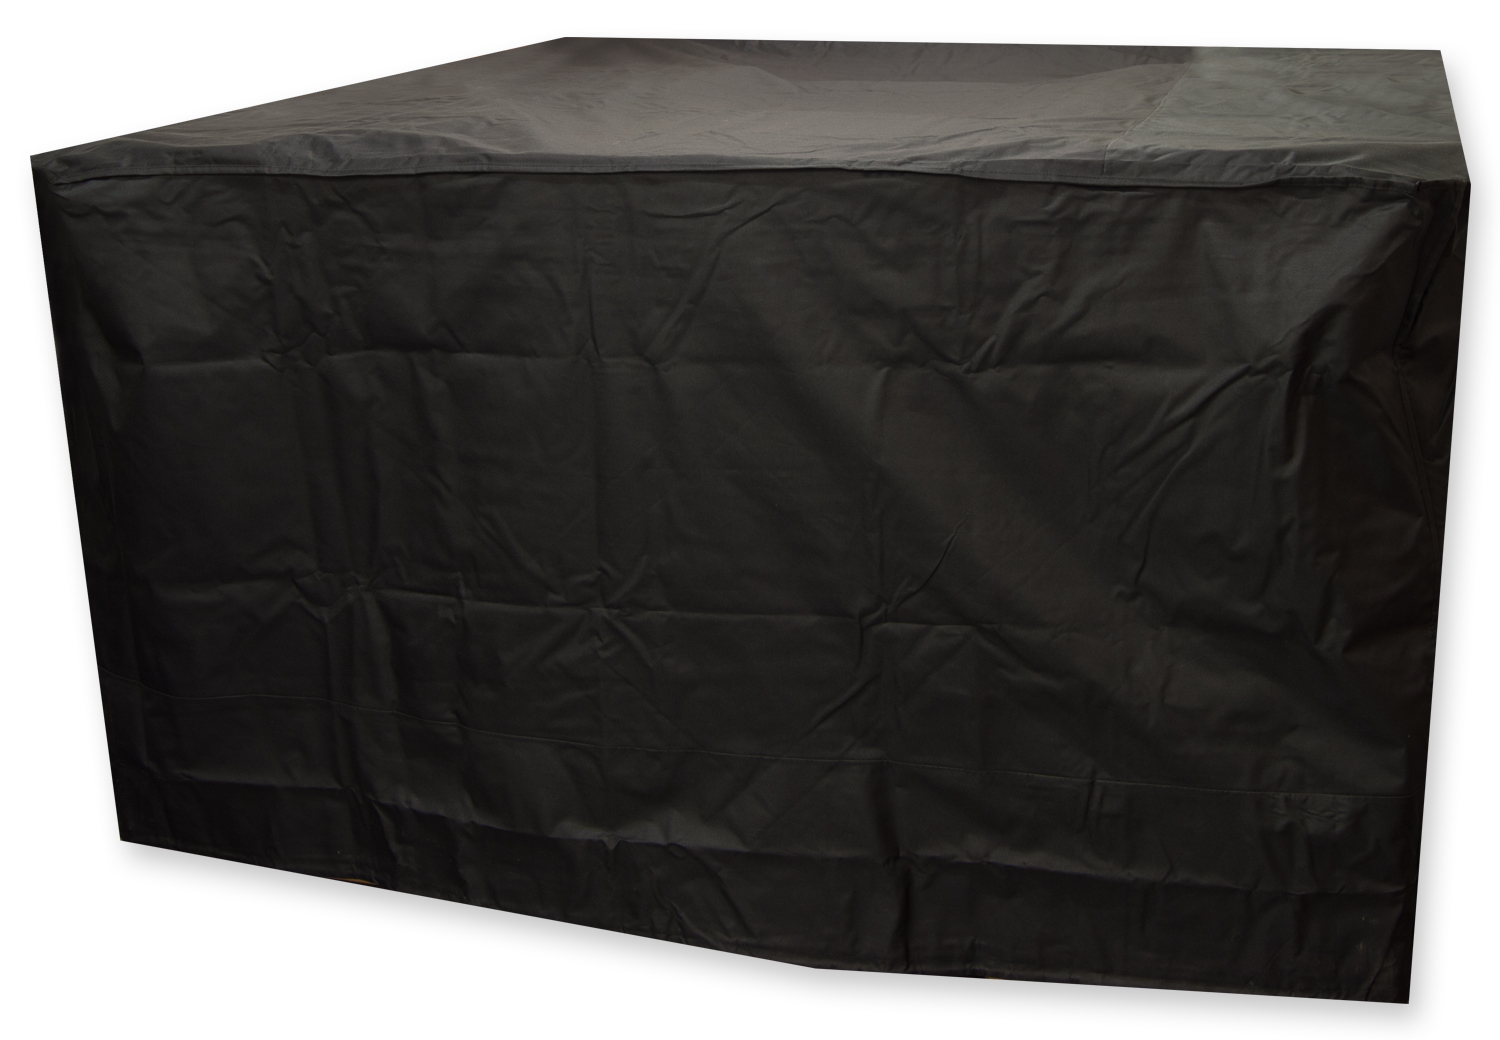 Oxbridge Large Oval Patio Set Cover Covers Outdoor Value